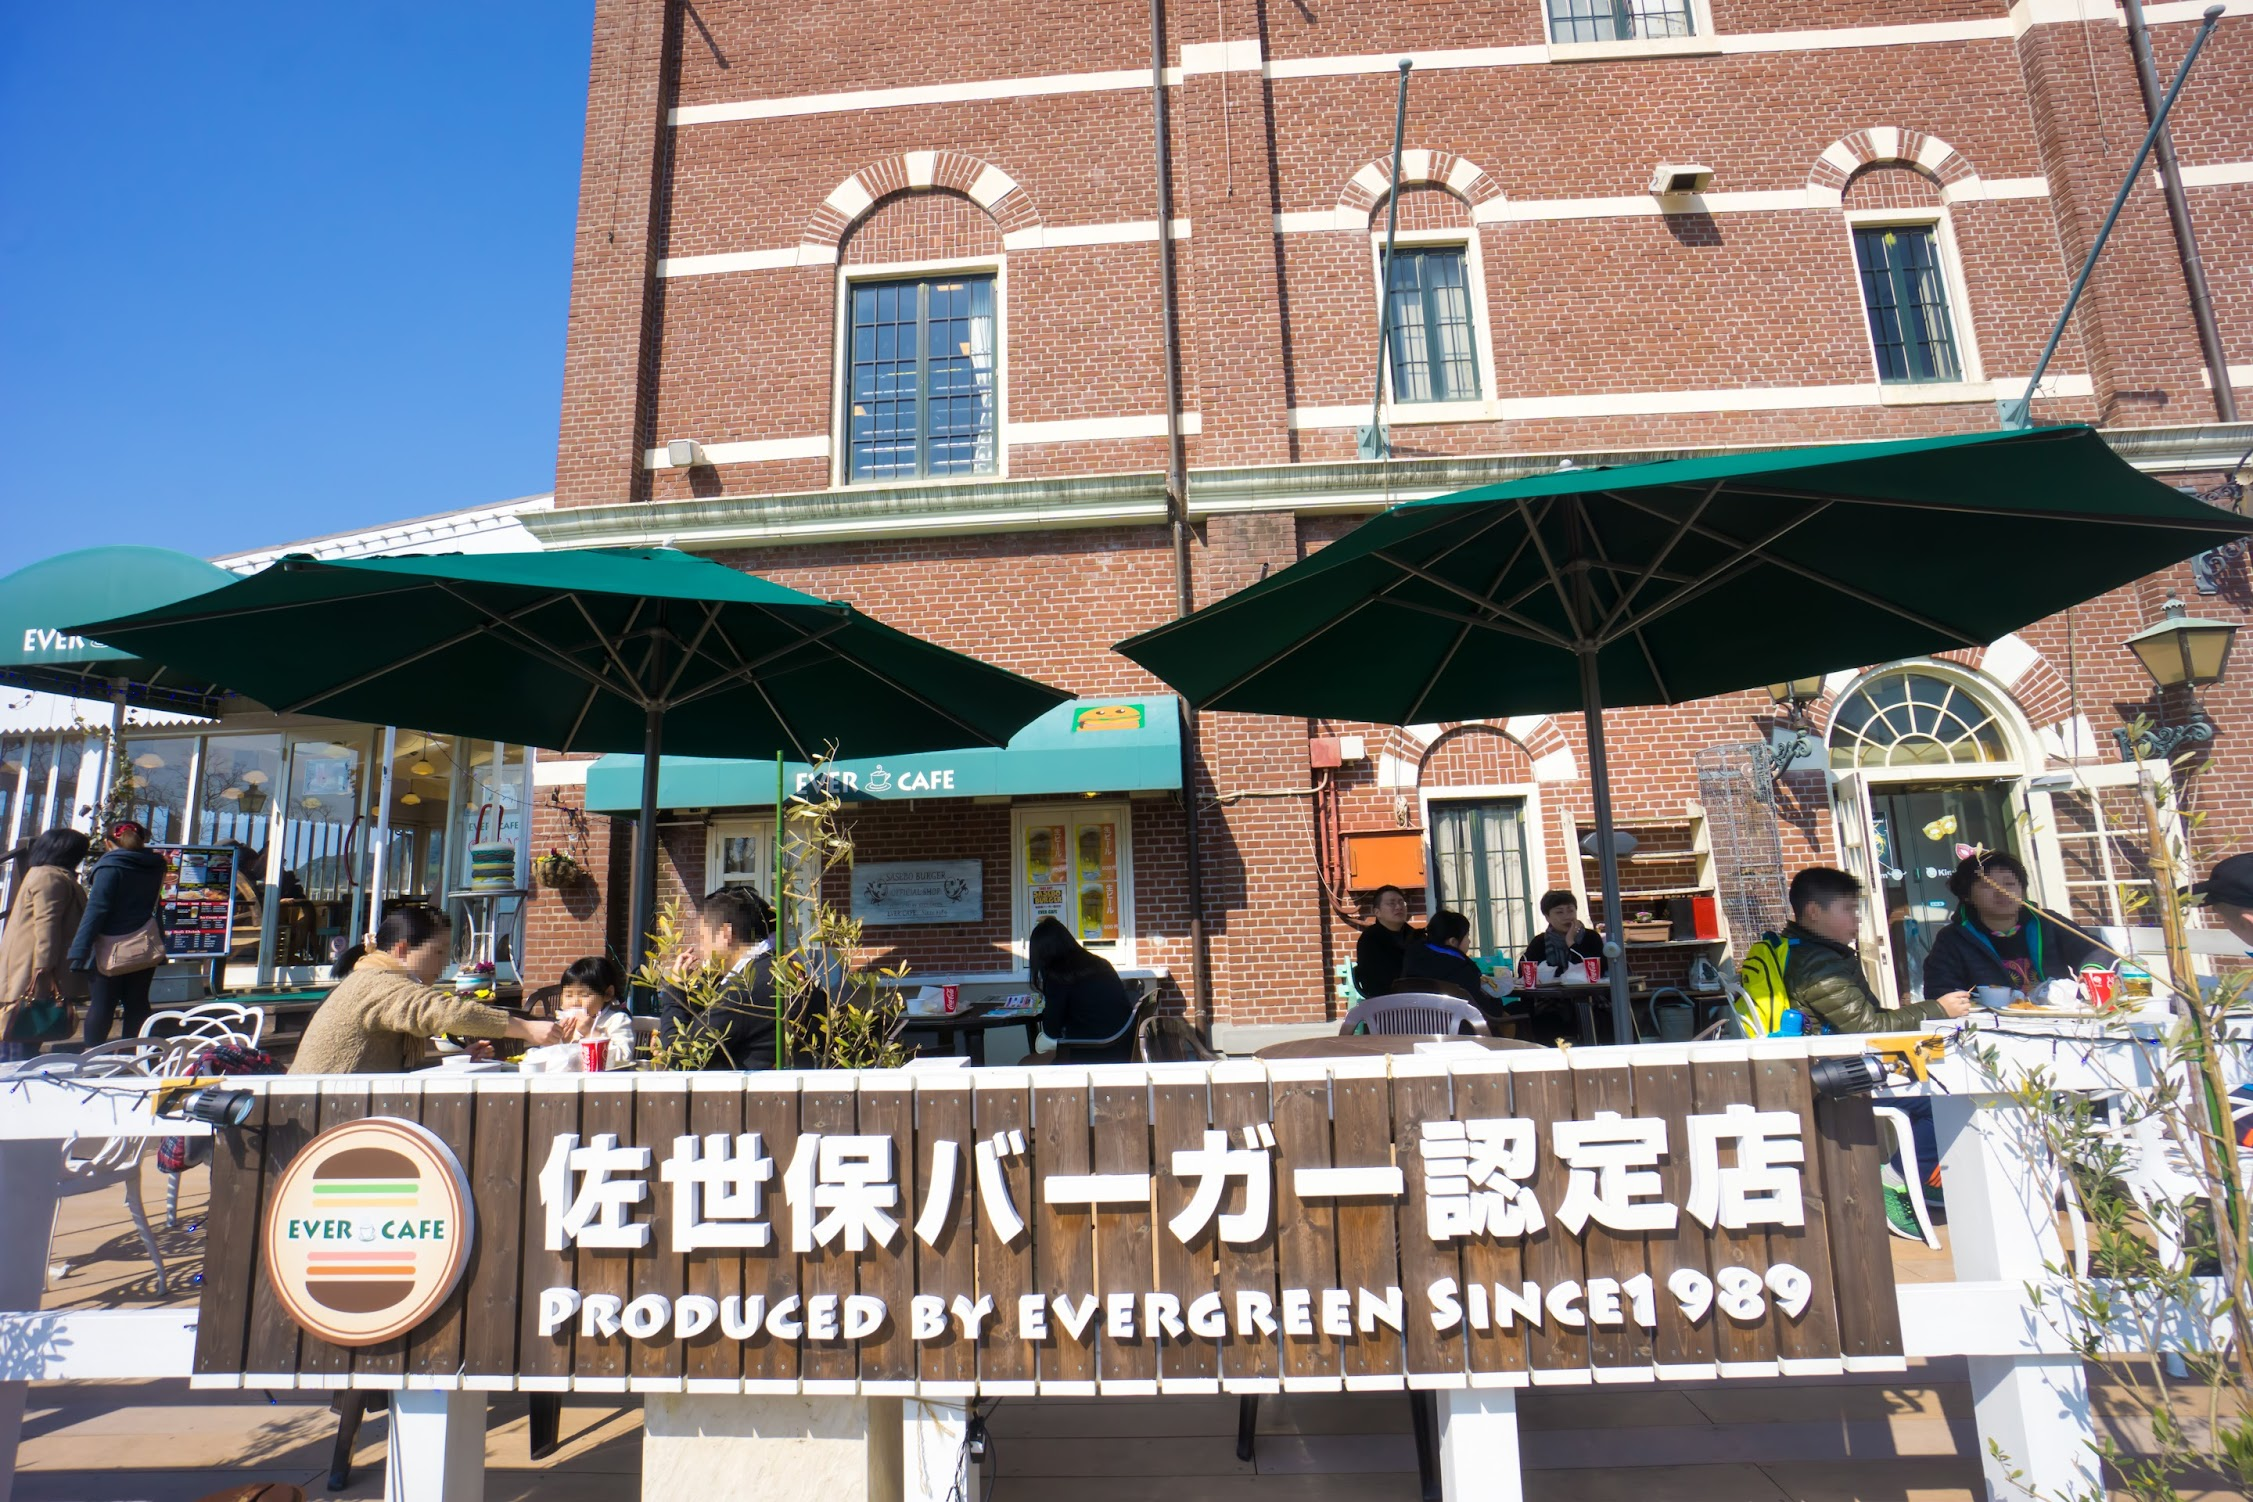 Huis Ten Bosch EVER CAFE